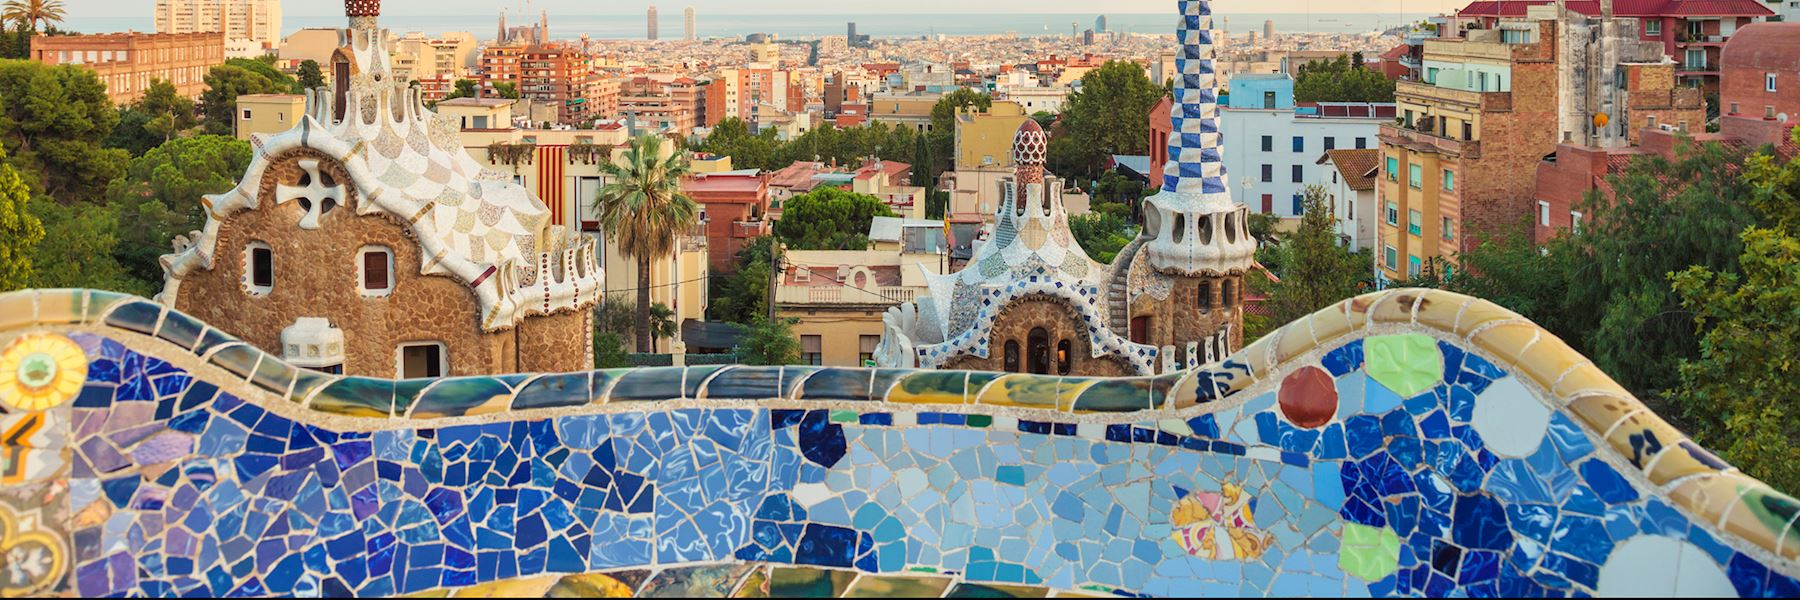 Spain vacations